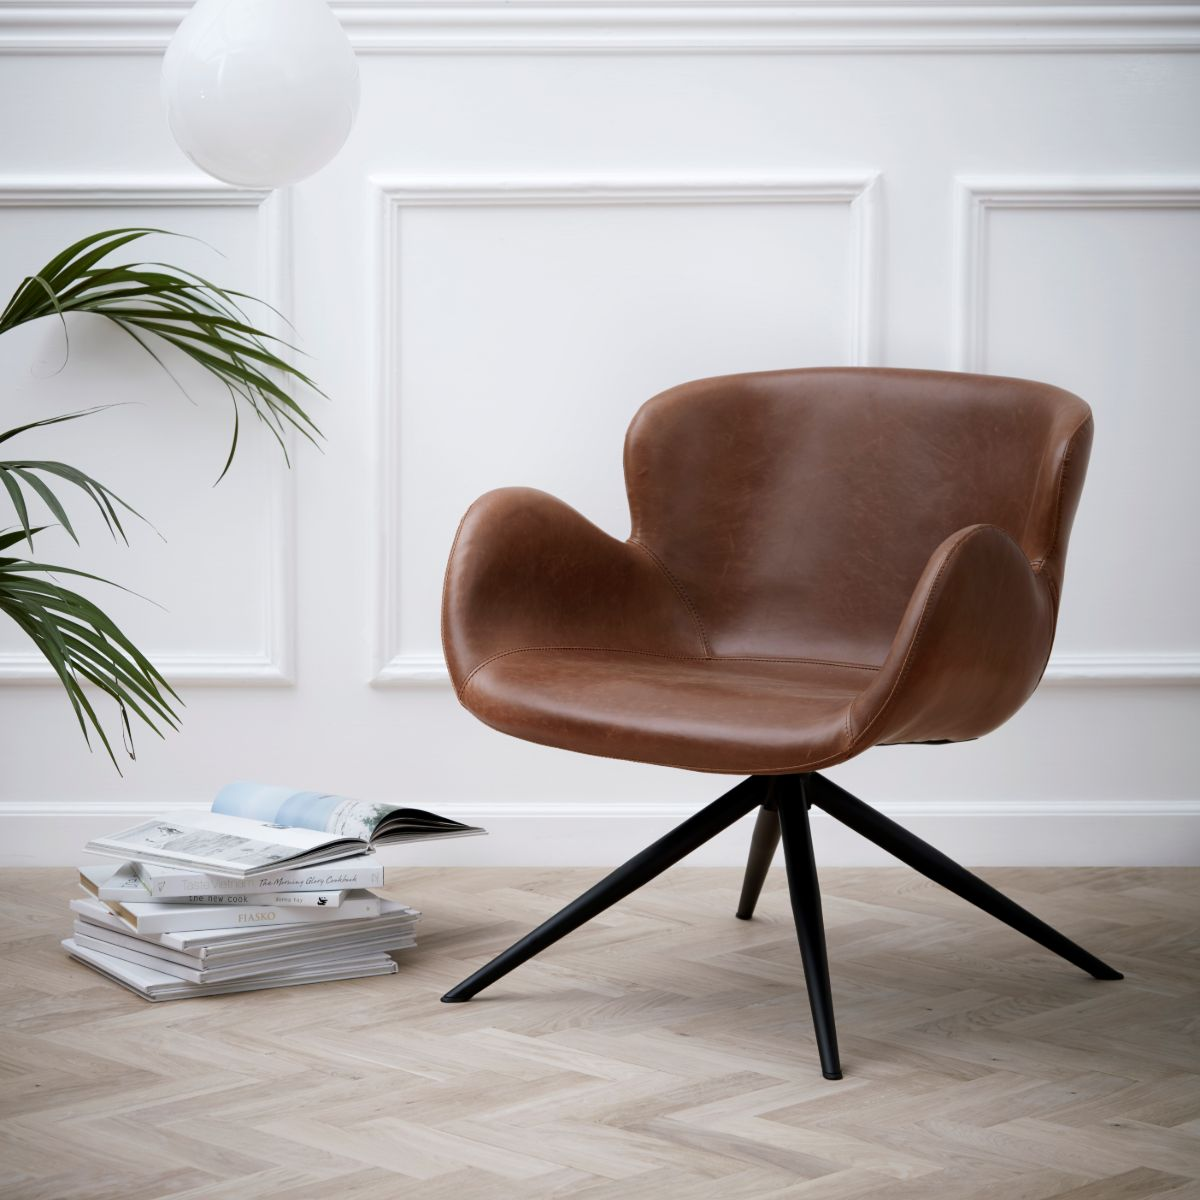 GAIA LOUNGE CHAIR vintage light brown art. leather w. black legs_700200110_MOOD 1